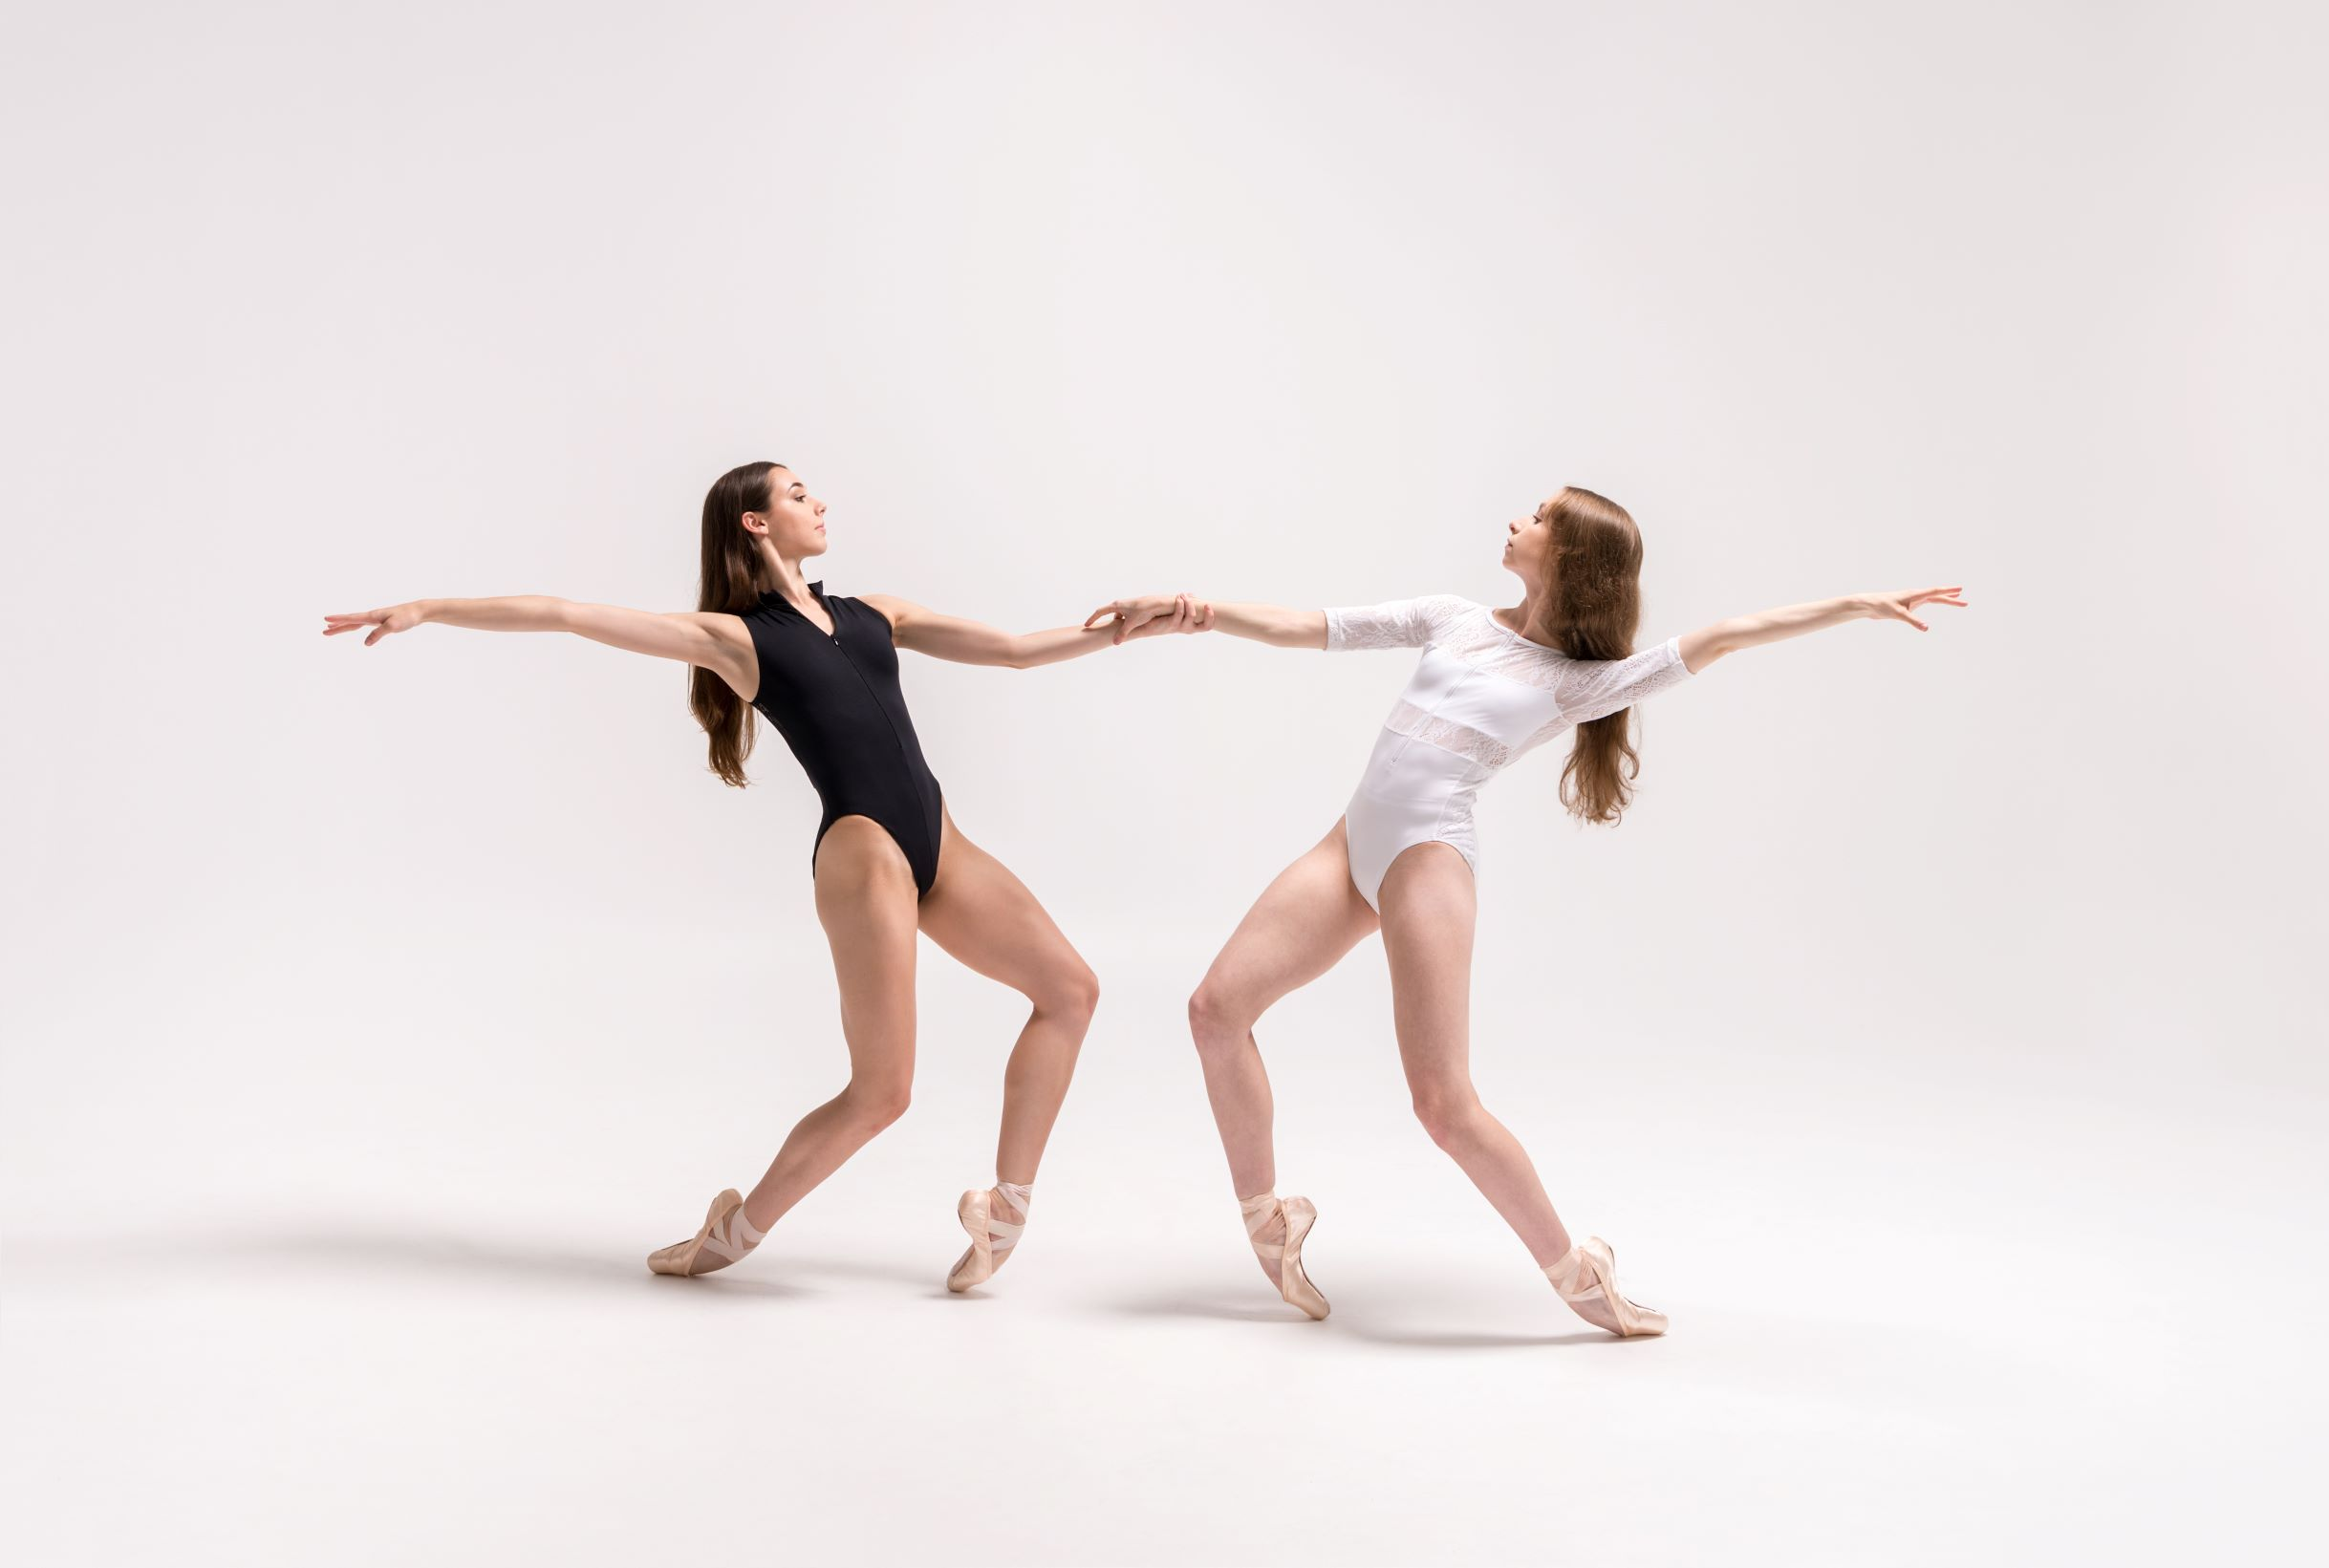 NZSD 2018 classical ballet students Layne Hampson & Tessa Karle